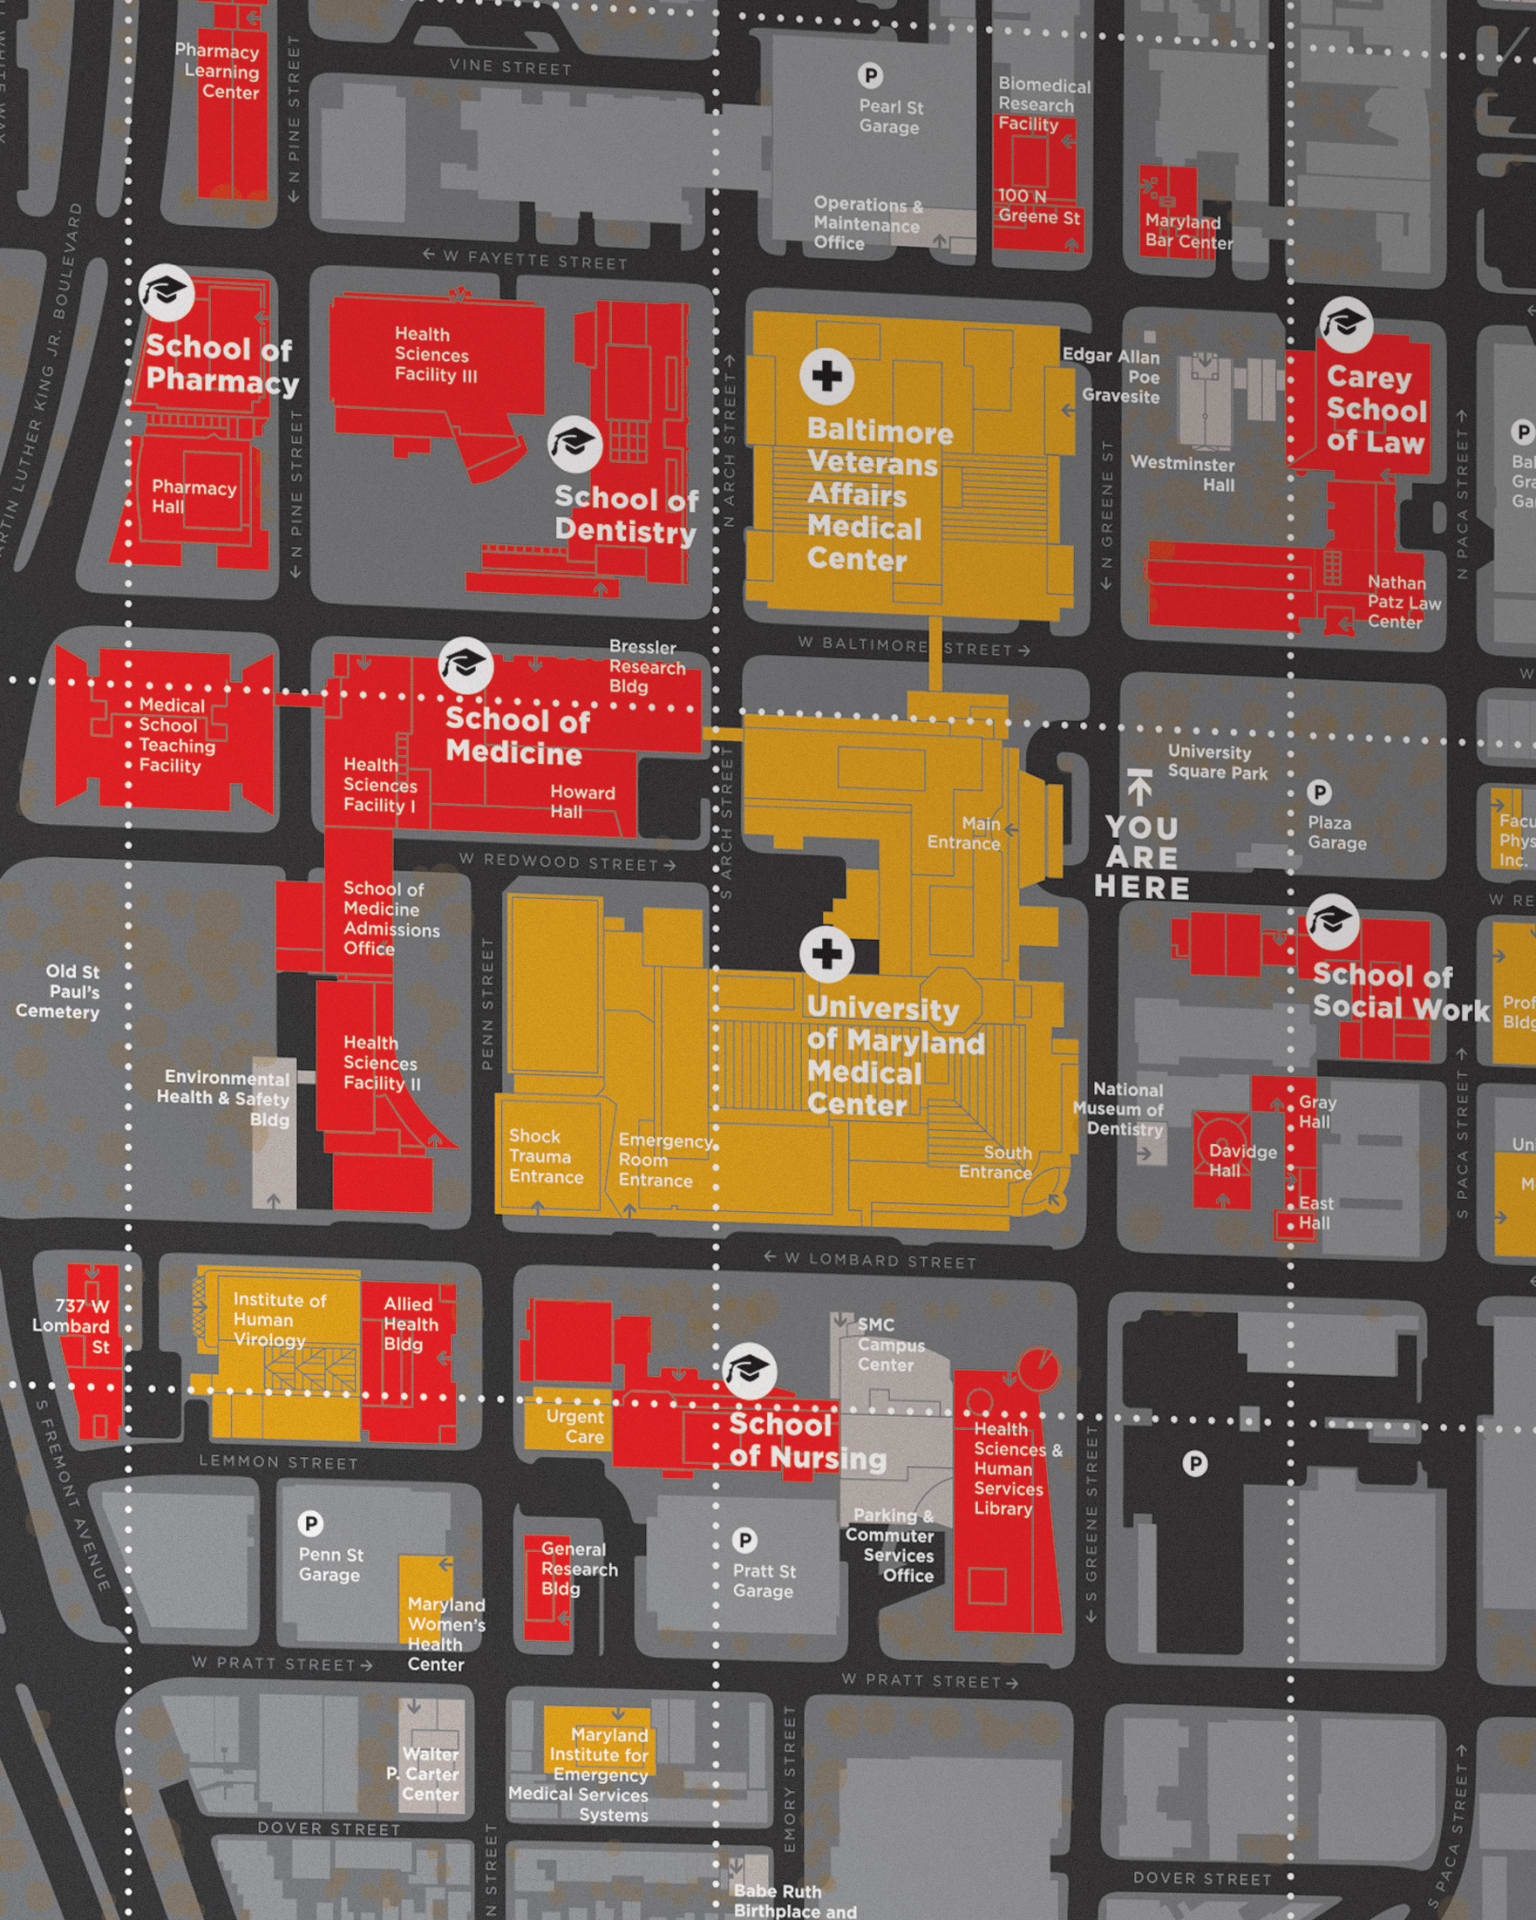 University of Maryland Campus Mapping